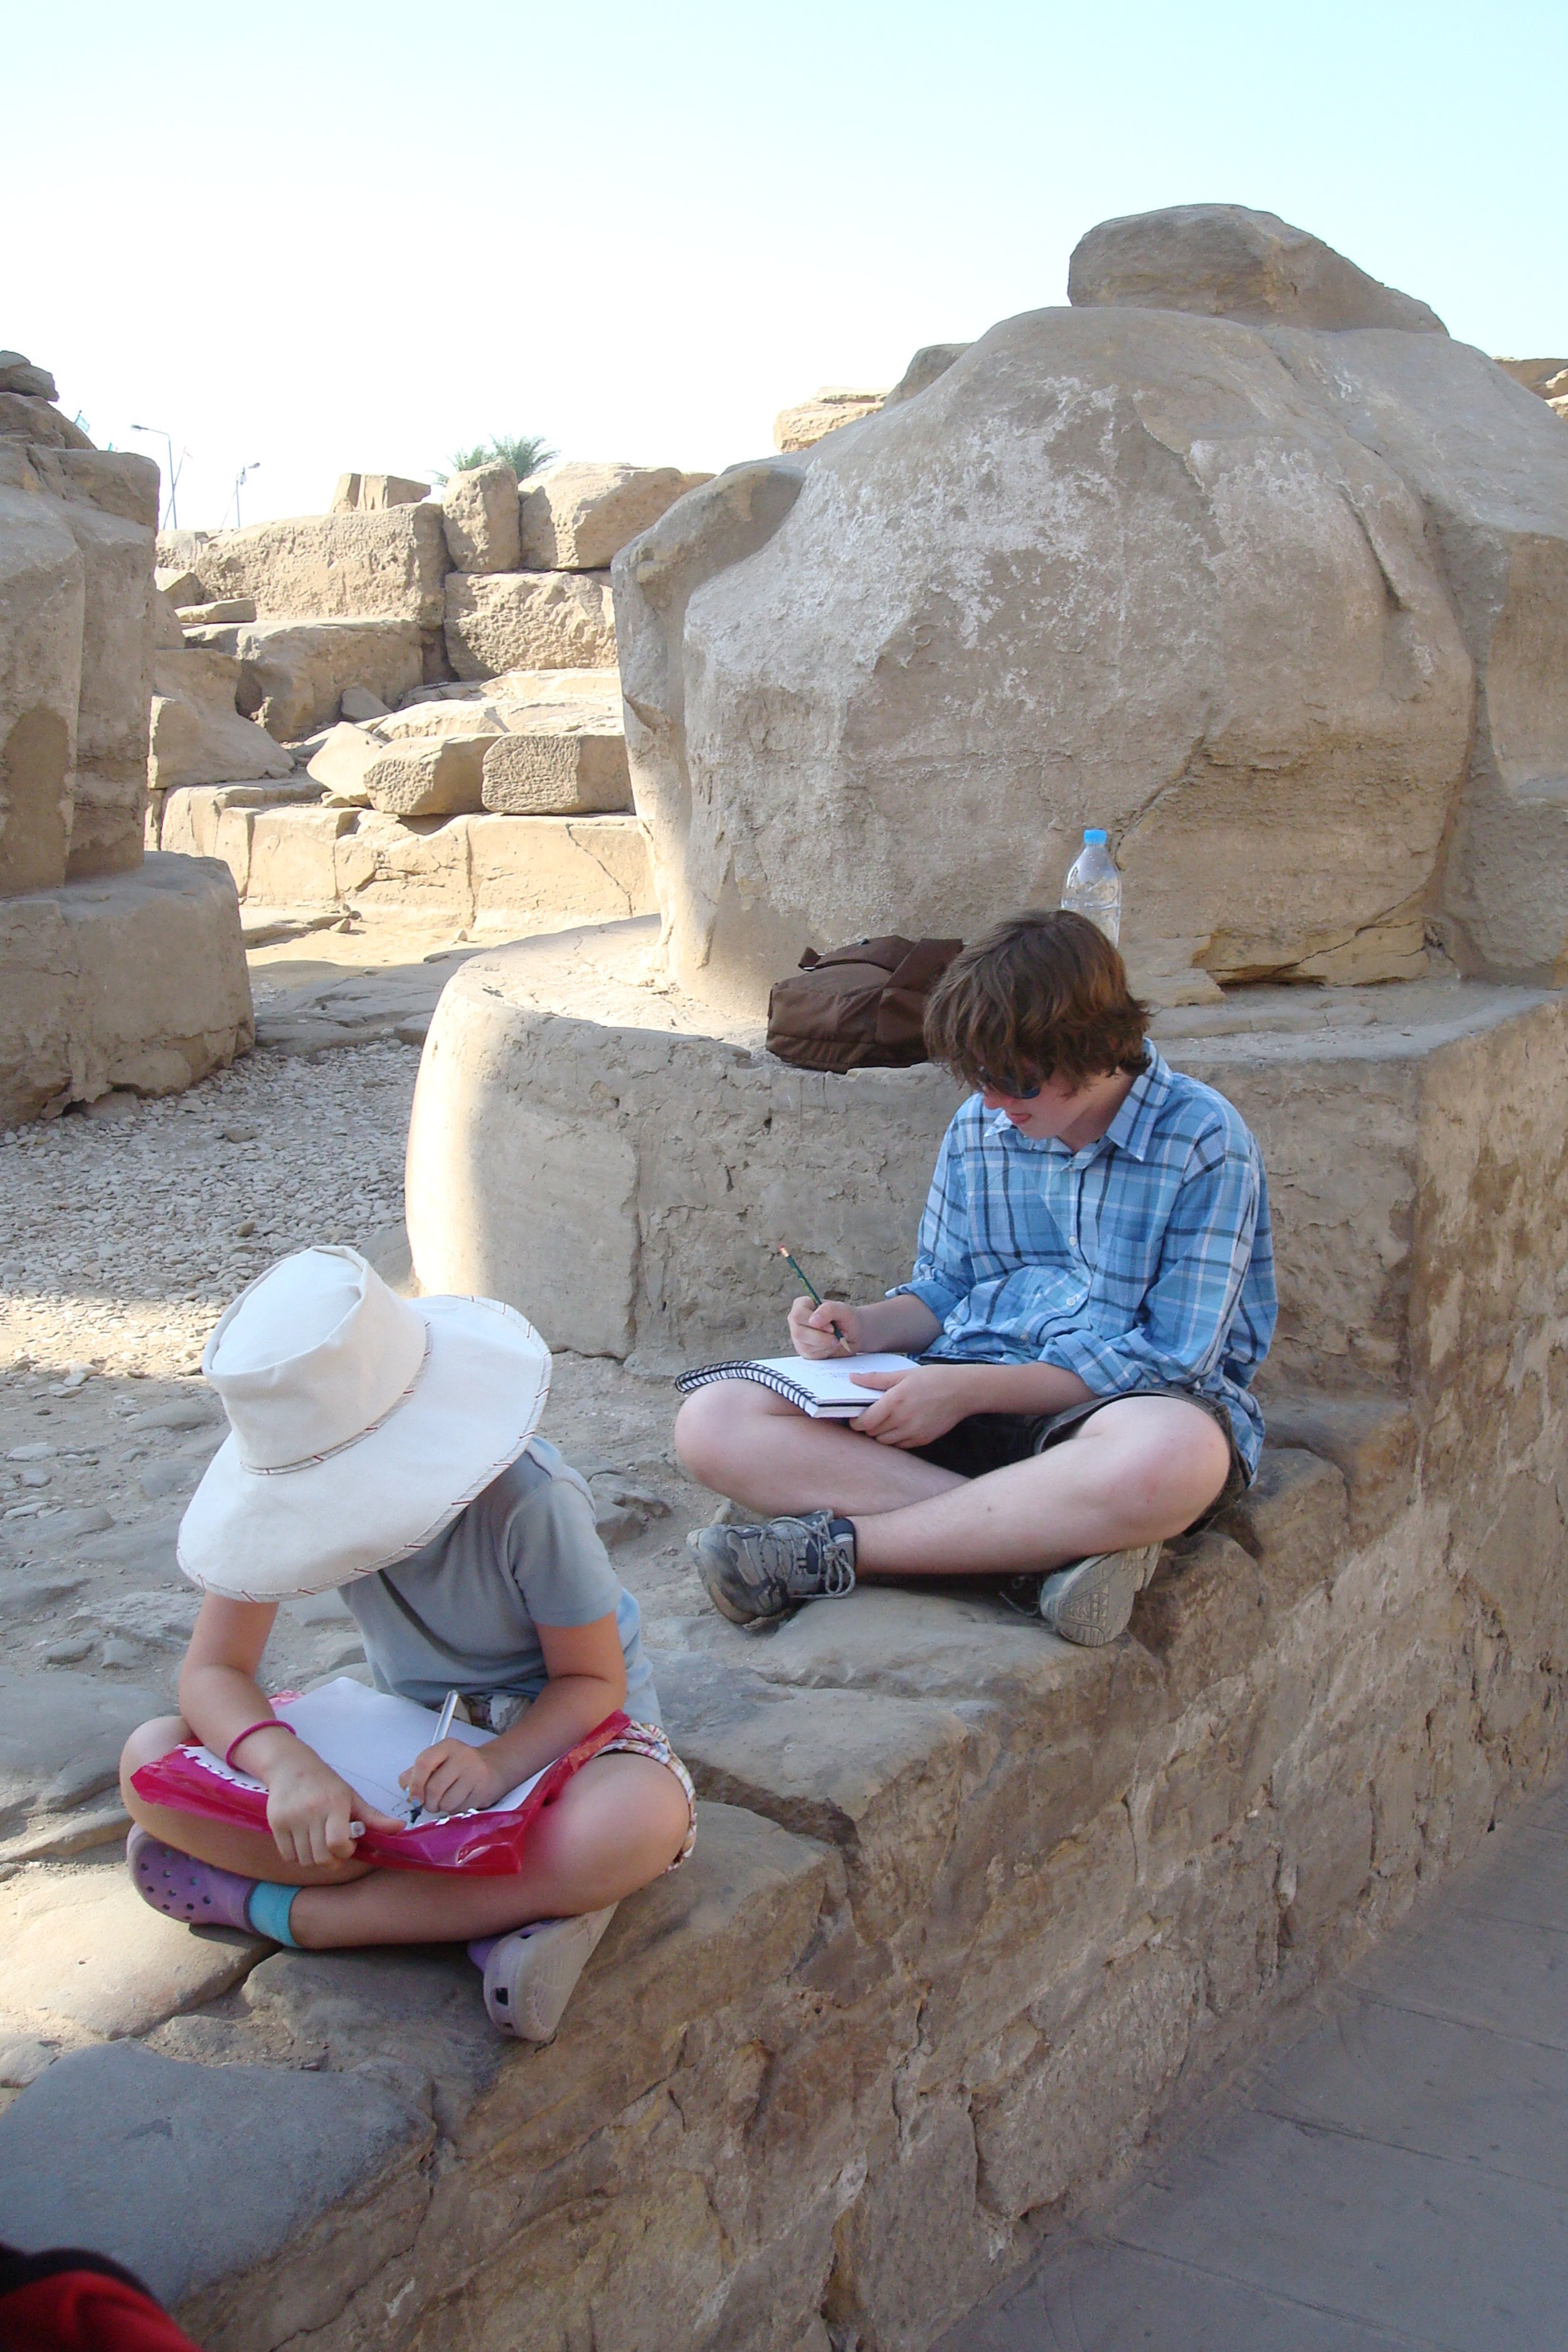 Sketching at Luxor, Egypt. Photo courtesy of Gwen Conners